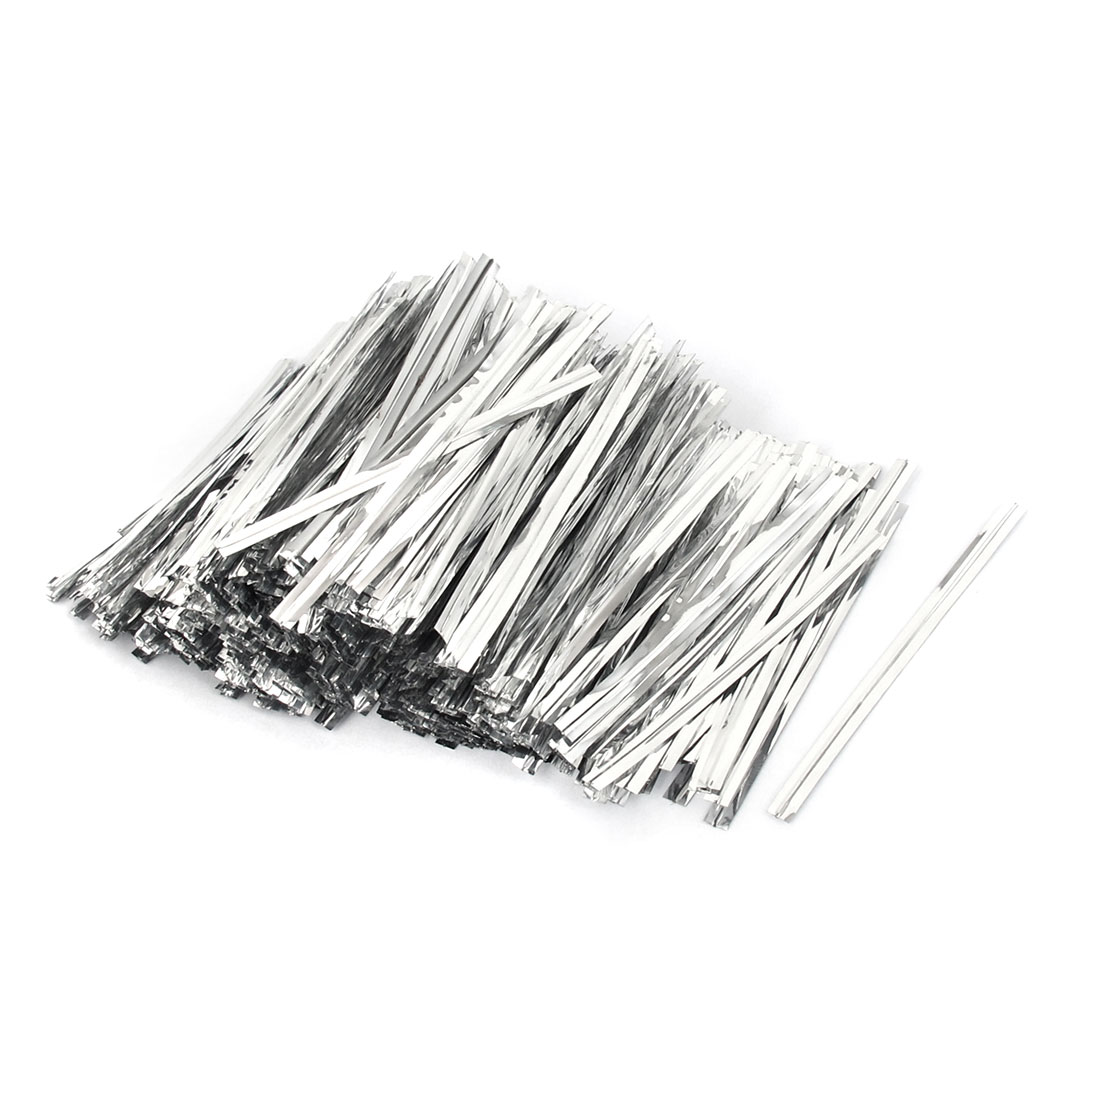 4000pcs 80mm Long Silver Tone Metal Twist Tie Wrapping String for Wedding Party Candy Bag